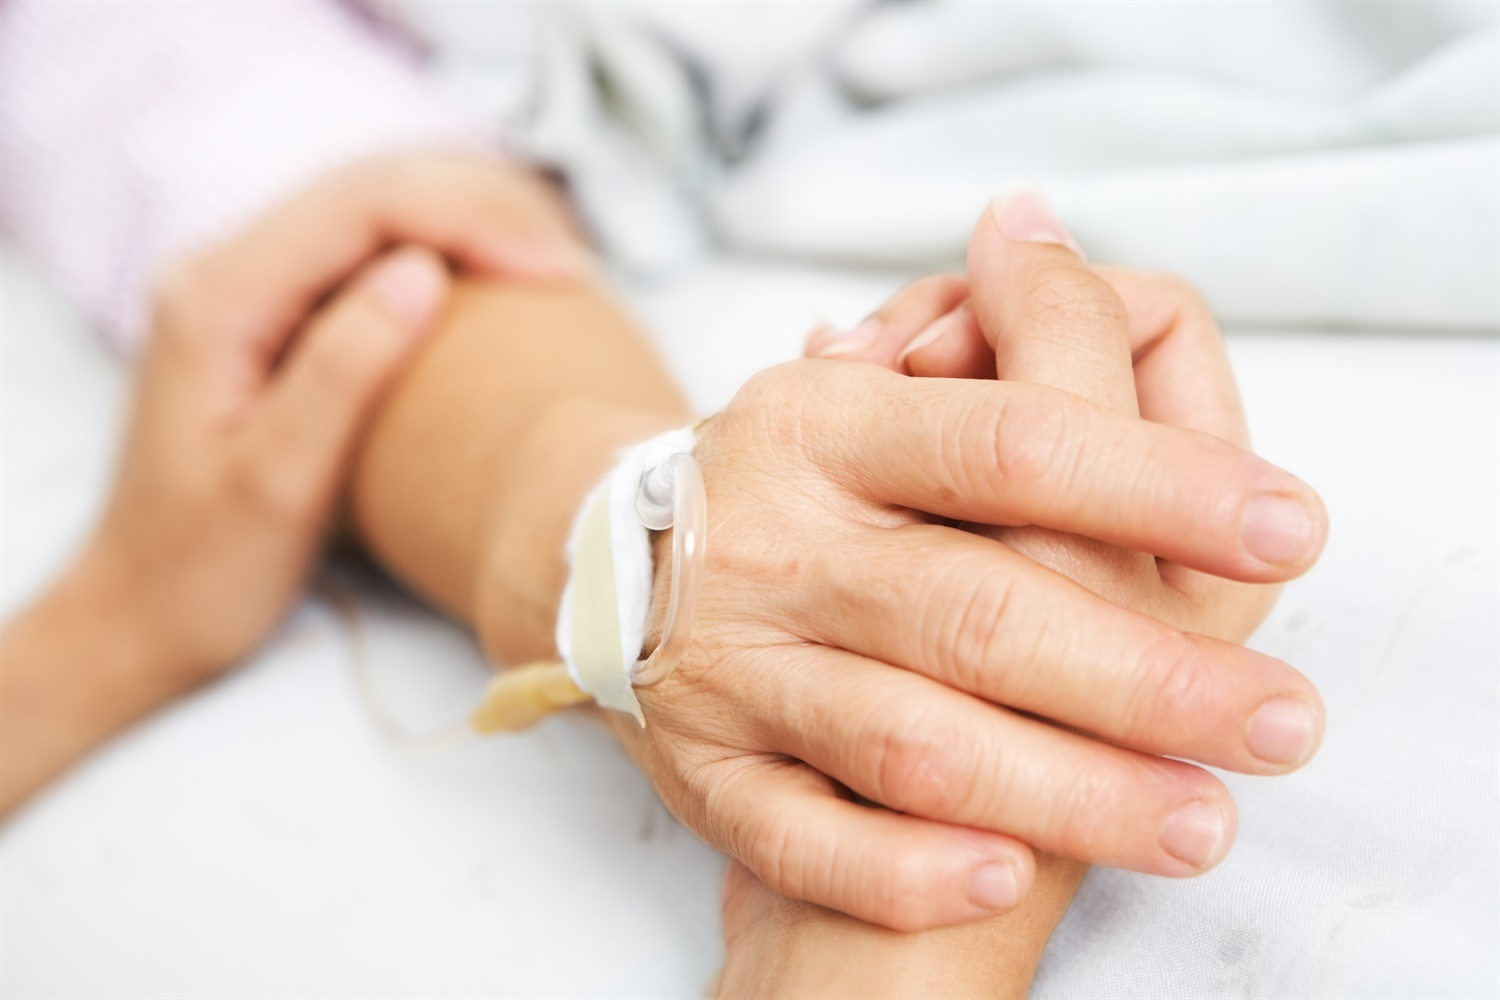 End of life care planning: why it should be everyone's concern